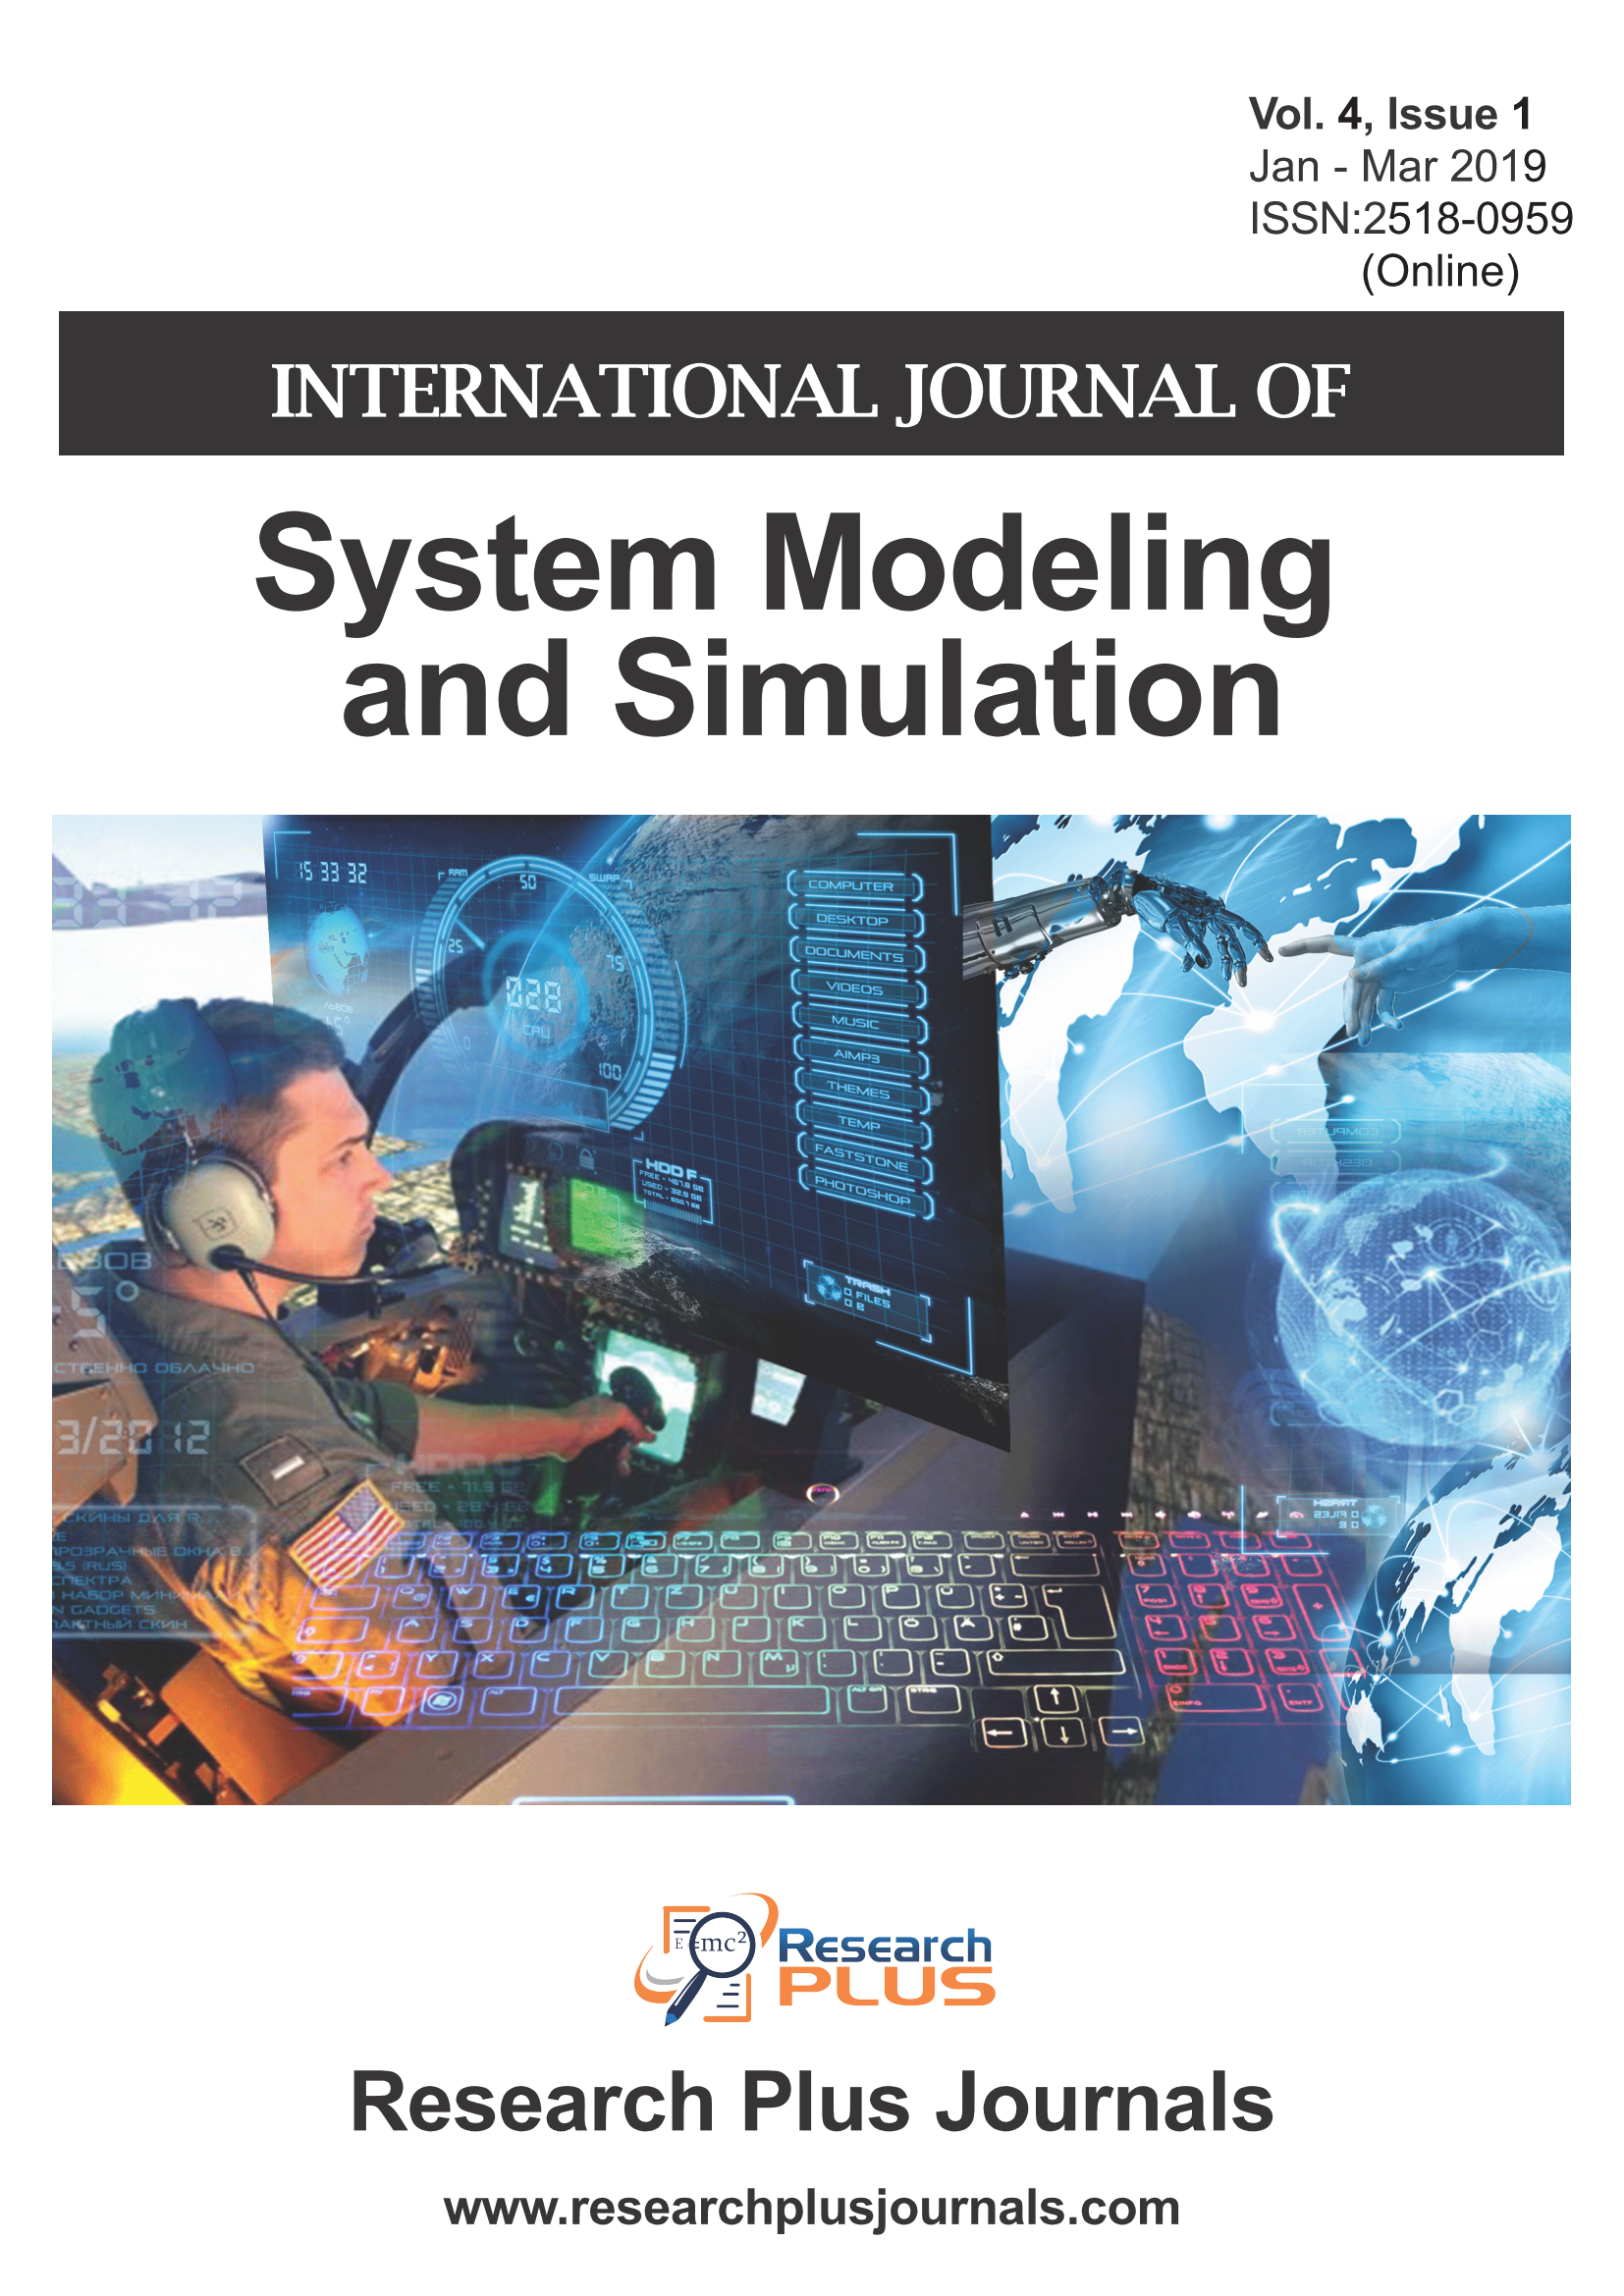 Volume 4, Issue 1, International Journal of System Modeling and Simulation (IJSMS)  (Online ISSN: 2518-0959)